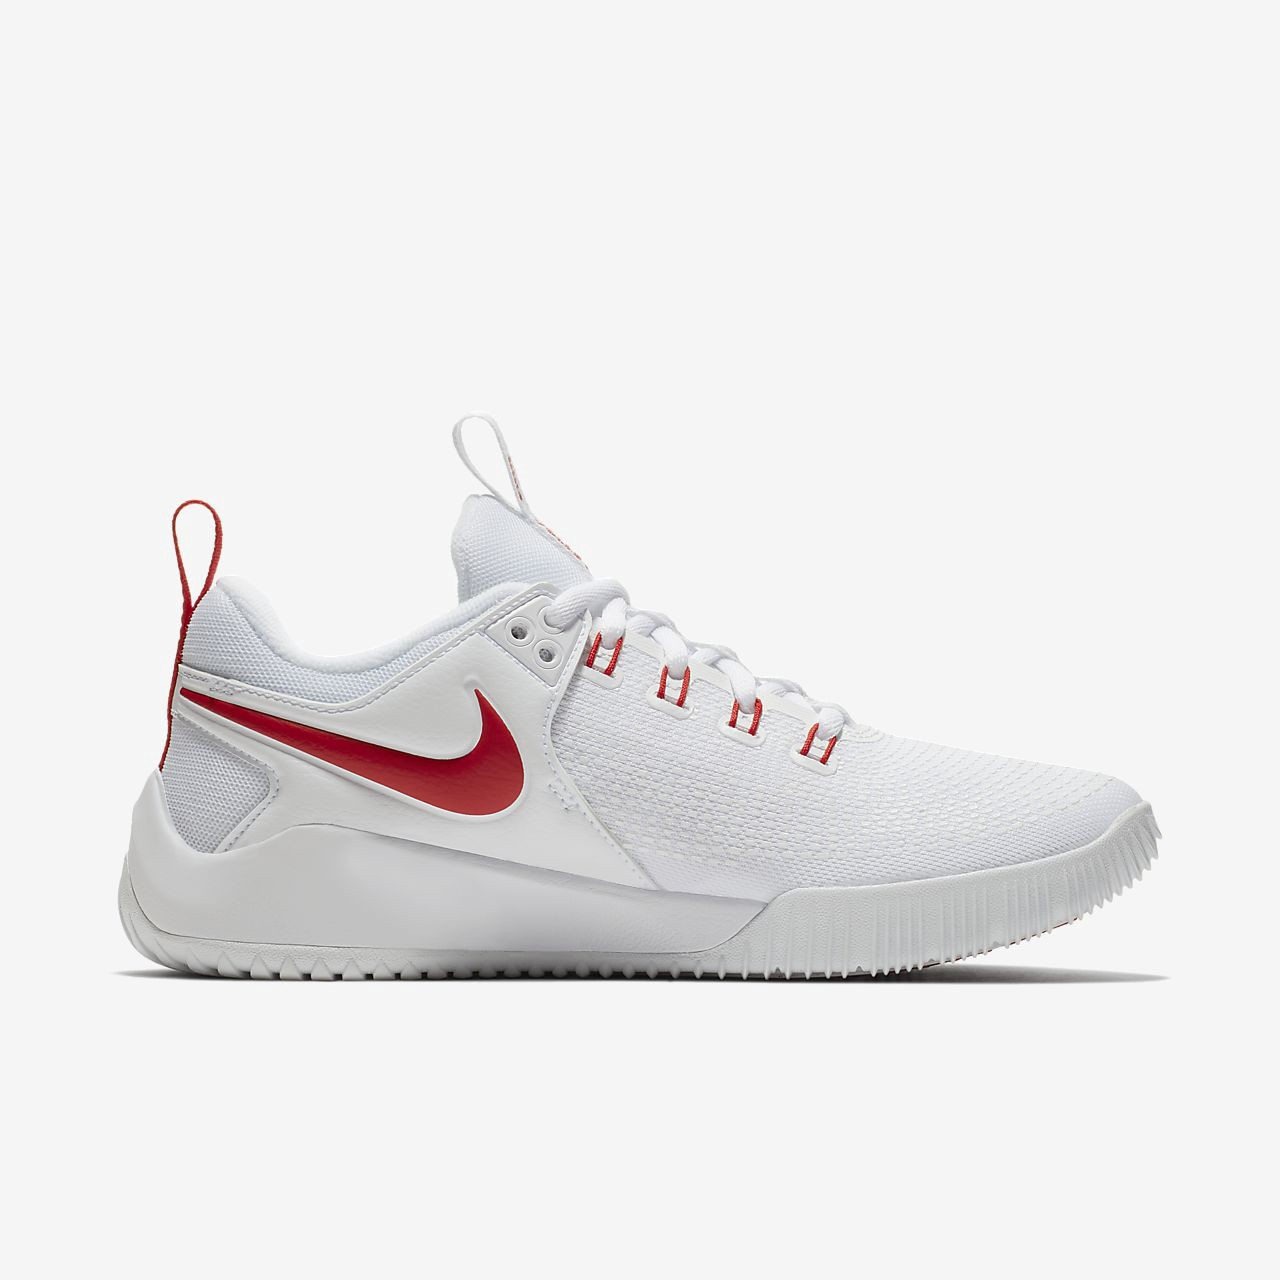 Nike Air Zoom Hyperace Women S Volleyball Shoe Nike Volleyball Shoes Volleyball Shoes Womens Basketball Shoes